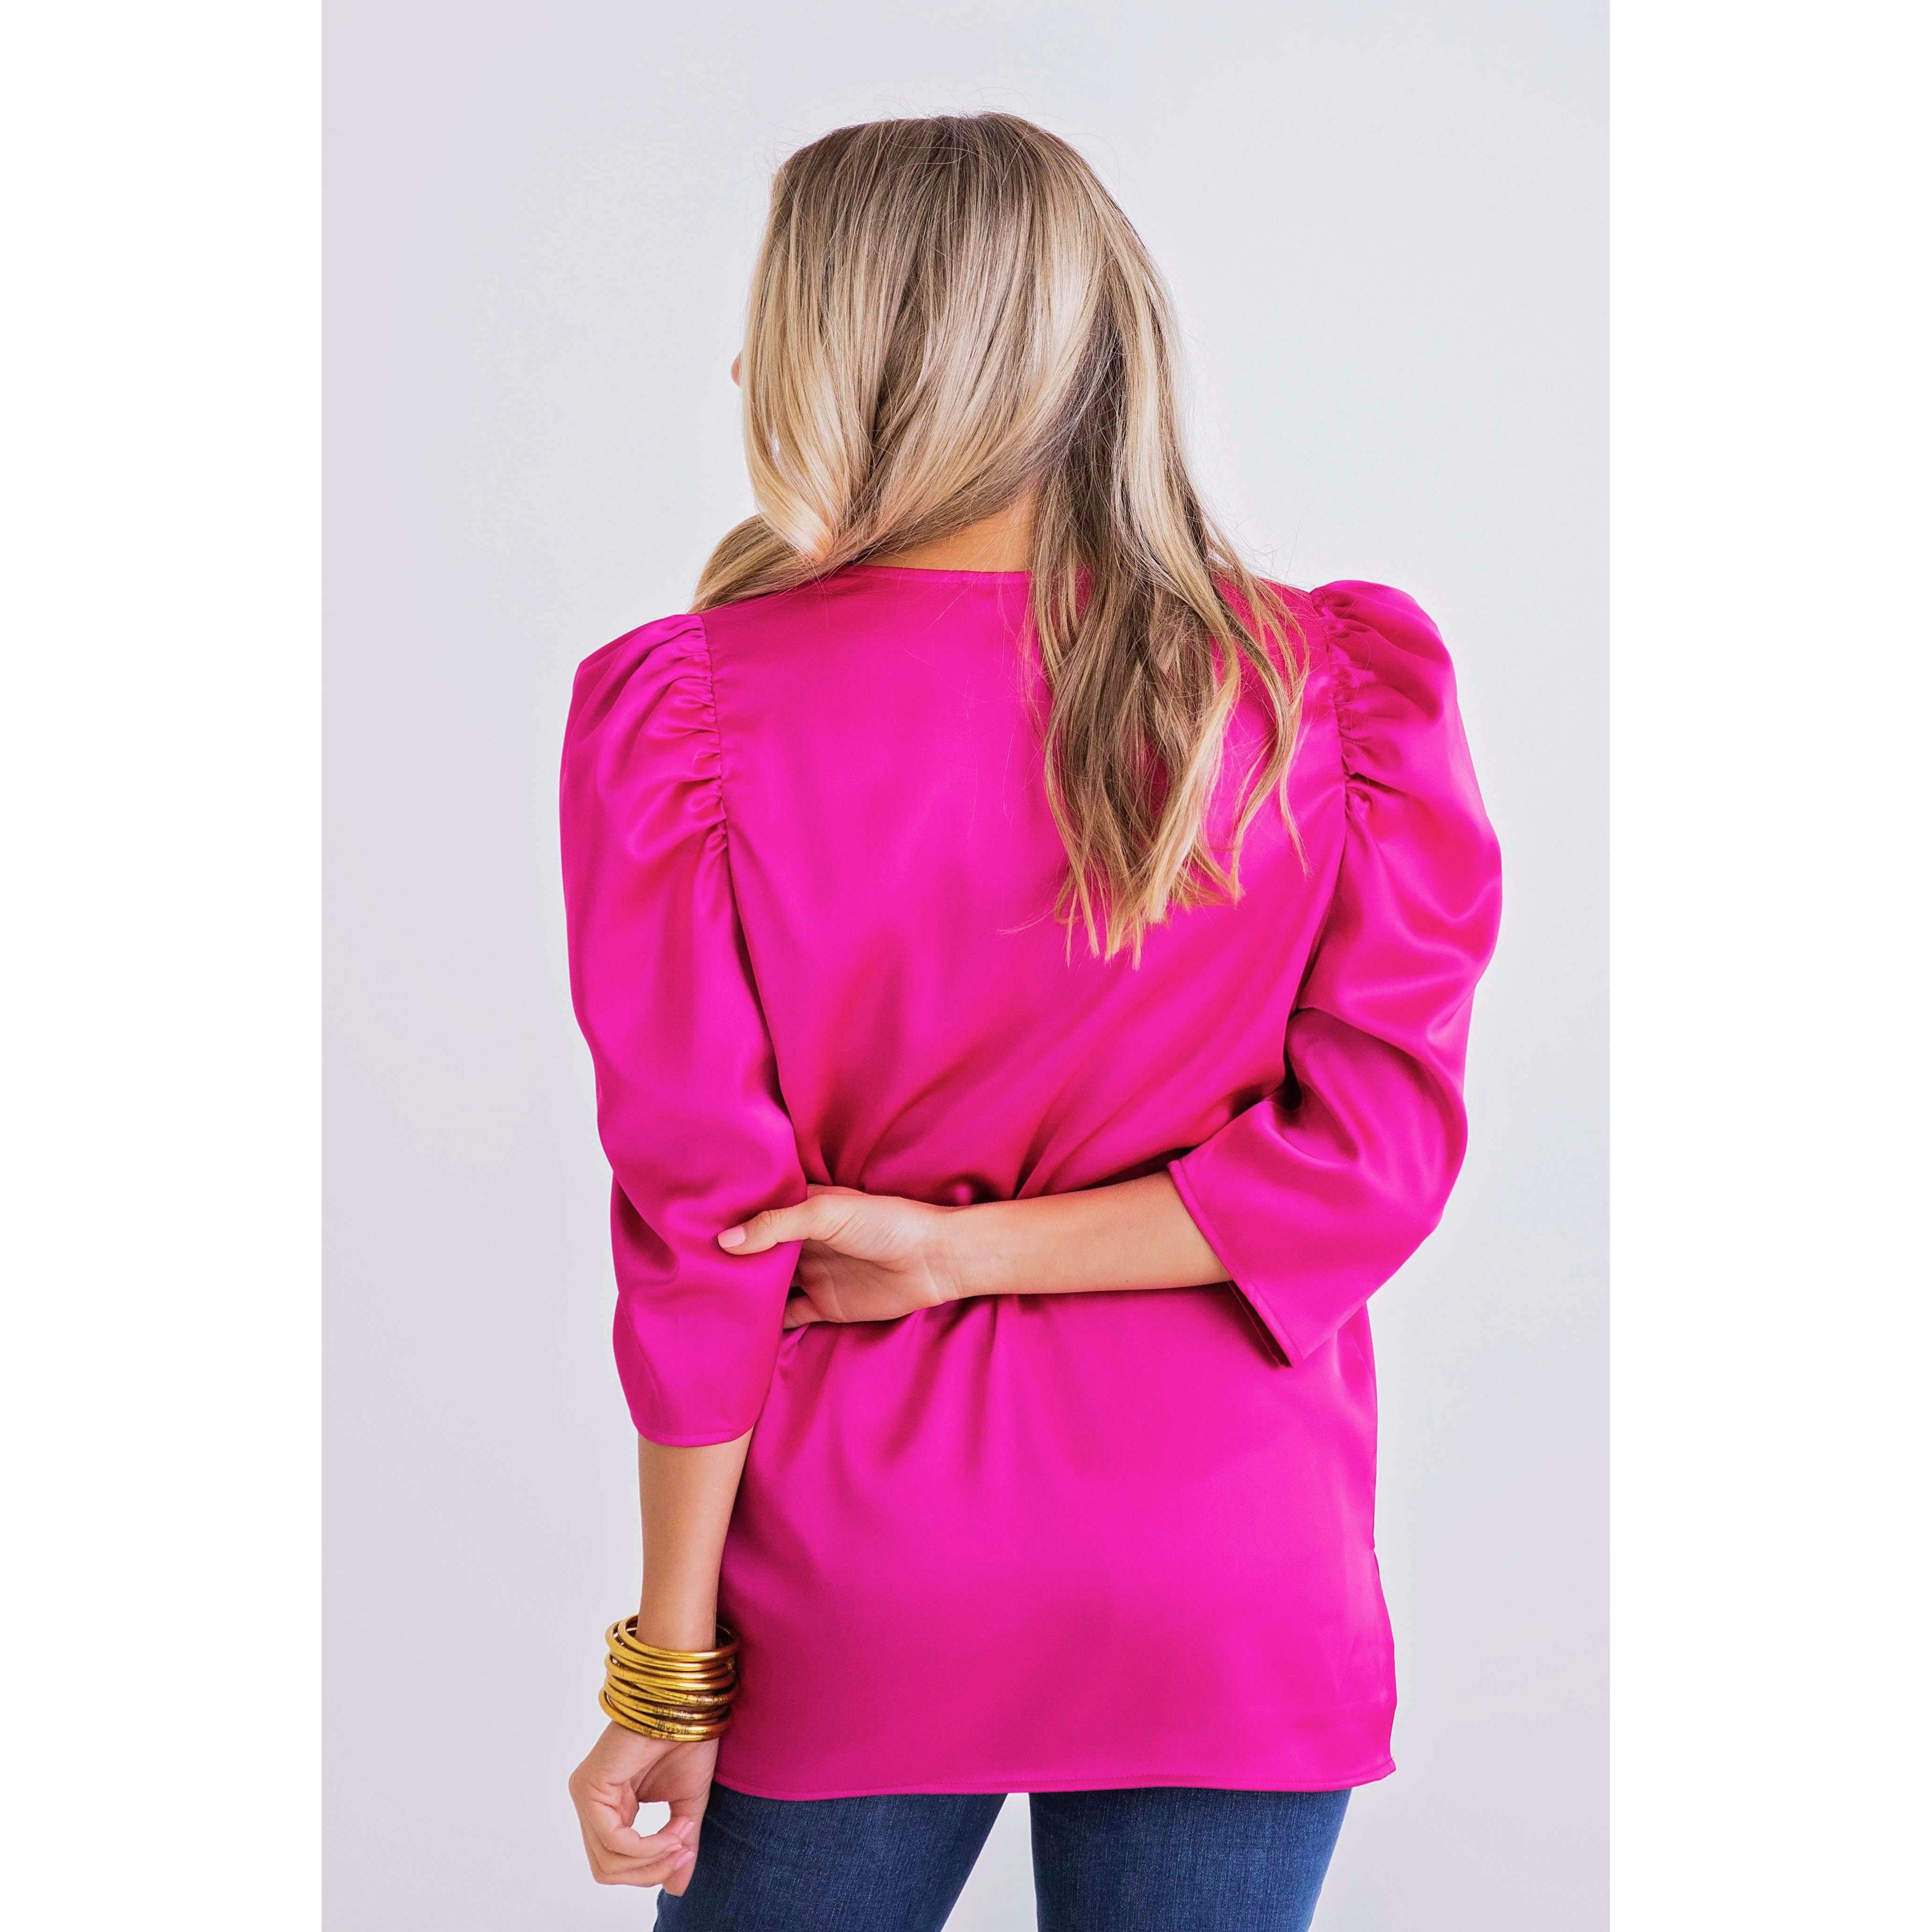 8.28 Boutique:Karlie Clothes,Karlie Clothes Hot Pink Puff Sleeve Top,Tops